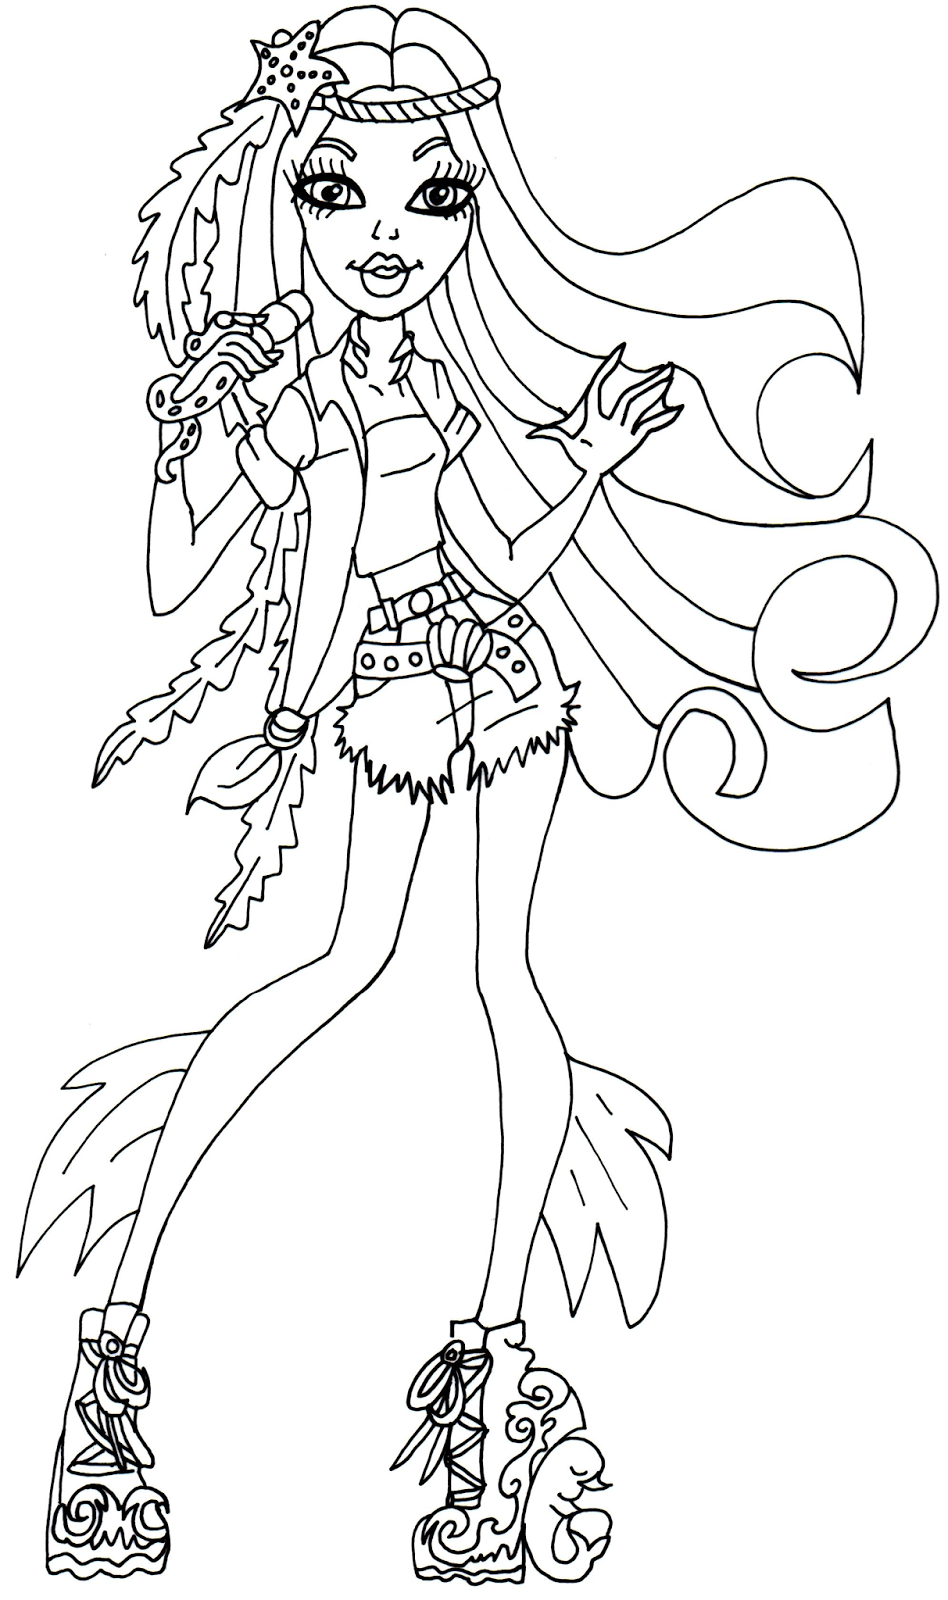 Monster high printable color pages for Monster high printables coloring pages